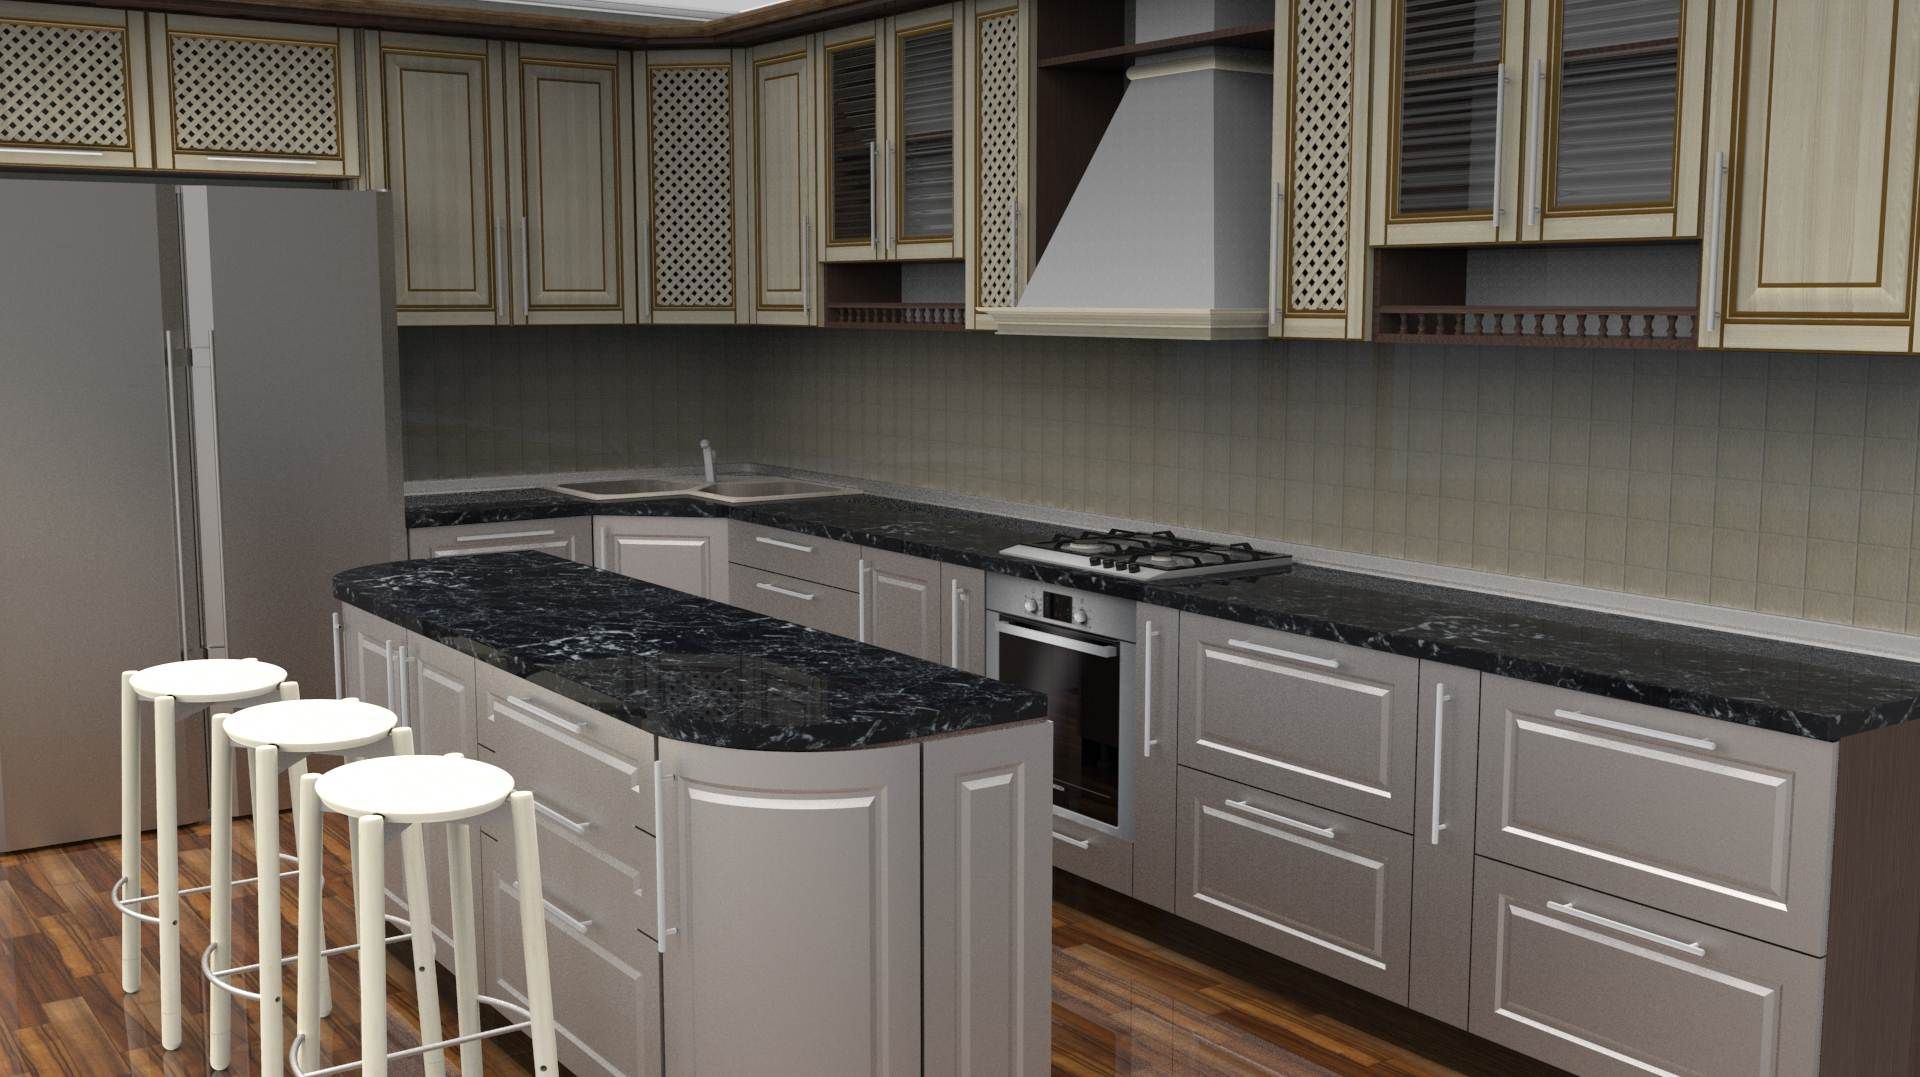 16 Best Online Kitchen Design Software Options Free & Paid  3D Mesmerizing Kitchen Designs Online Design Decoration